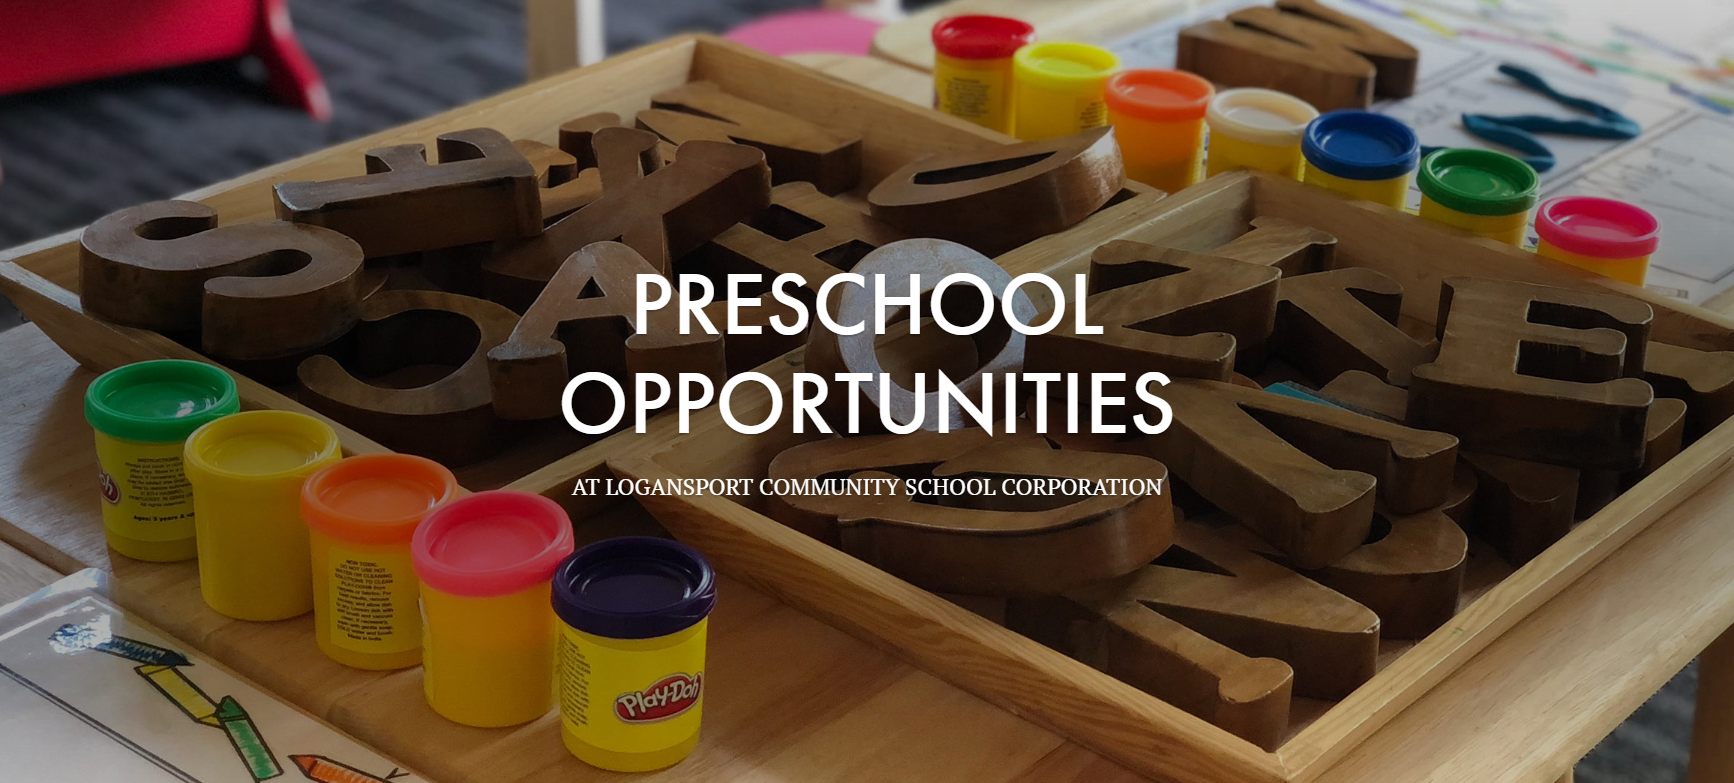 Preschool Opportunities